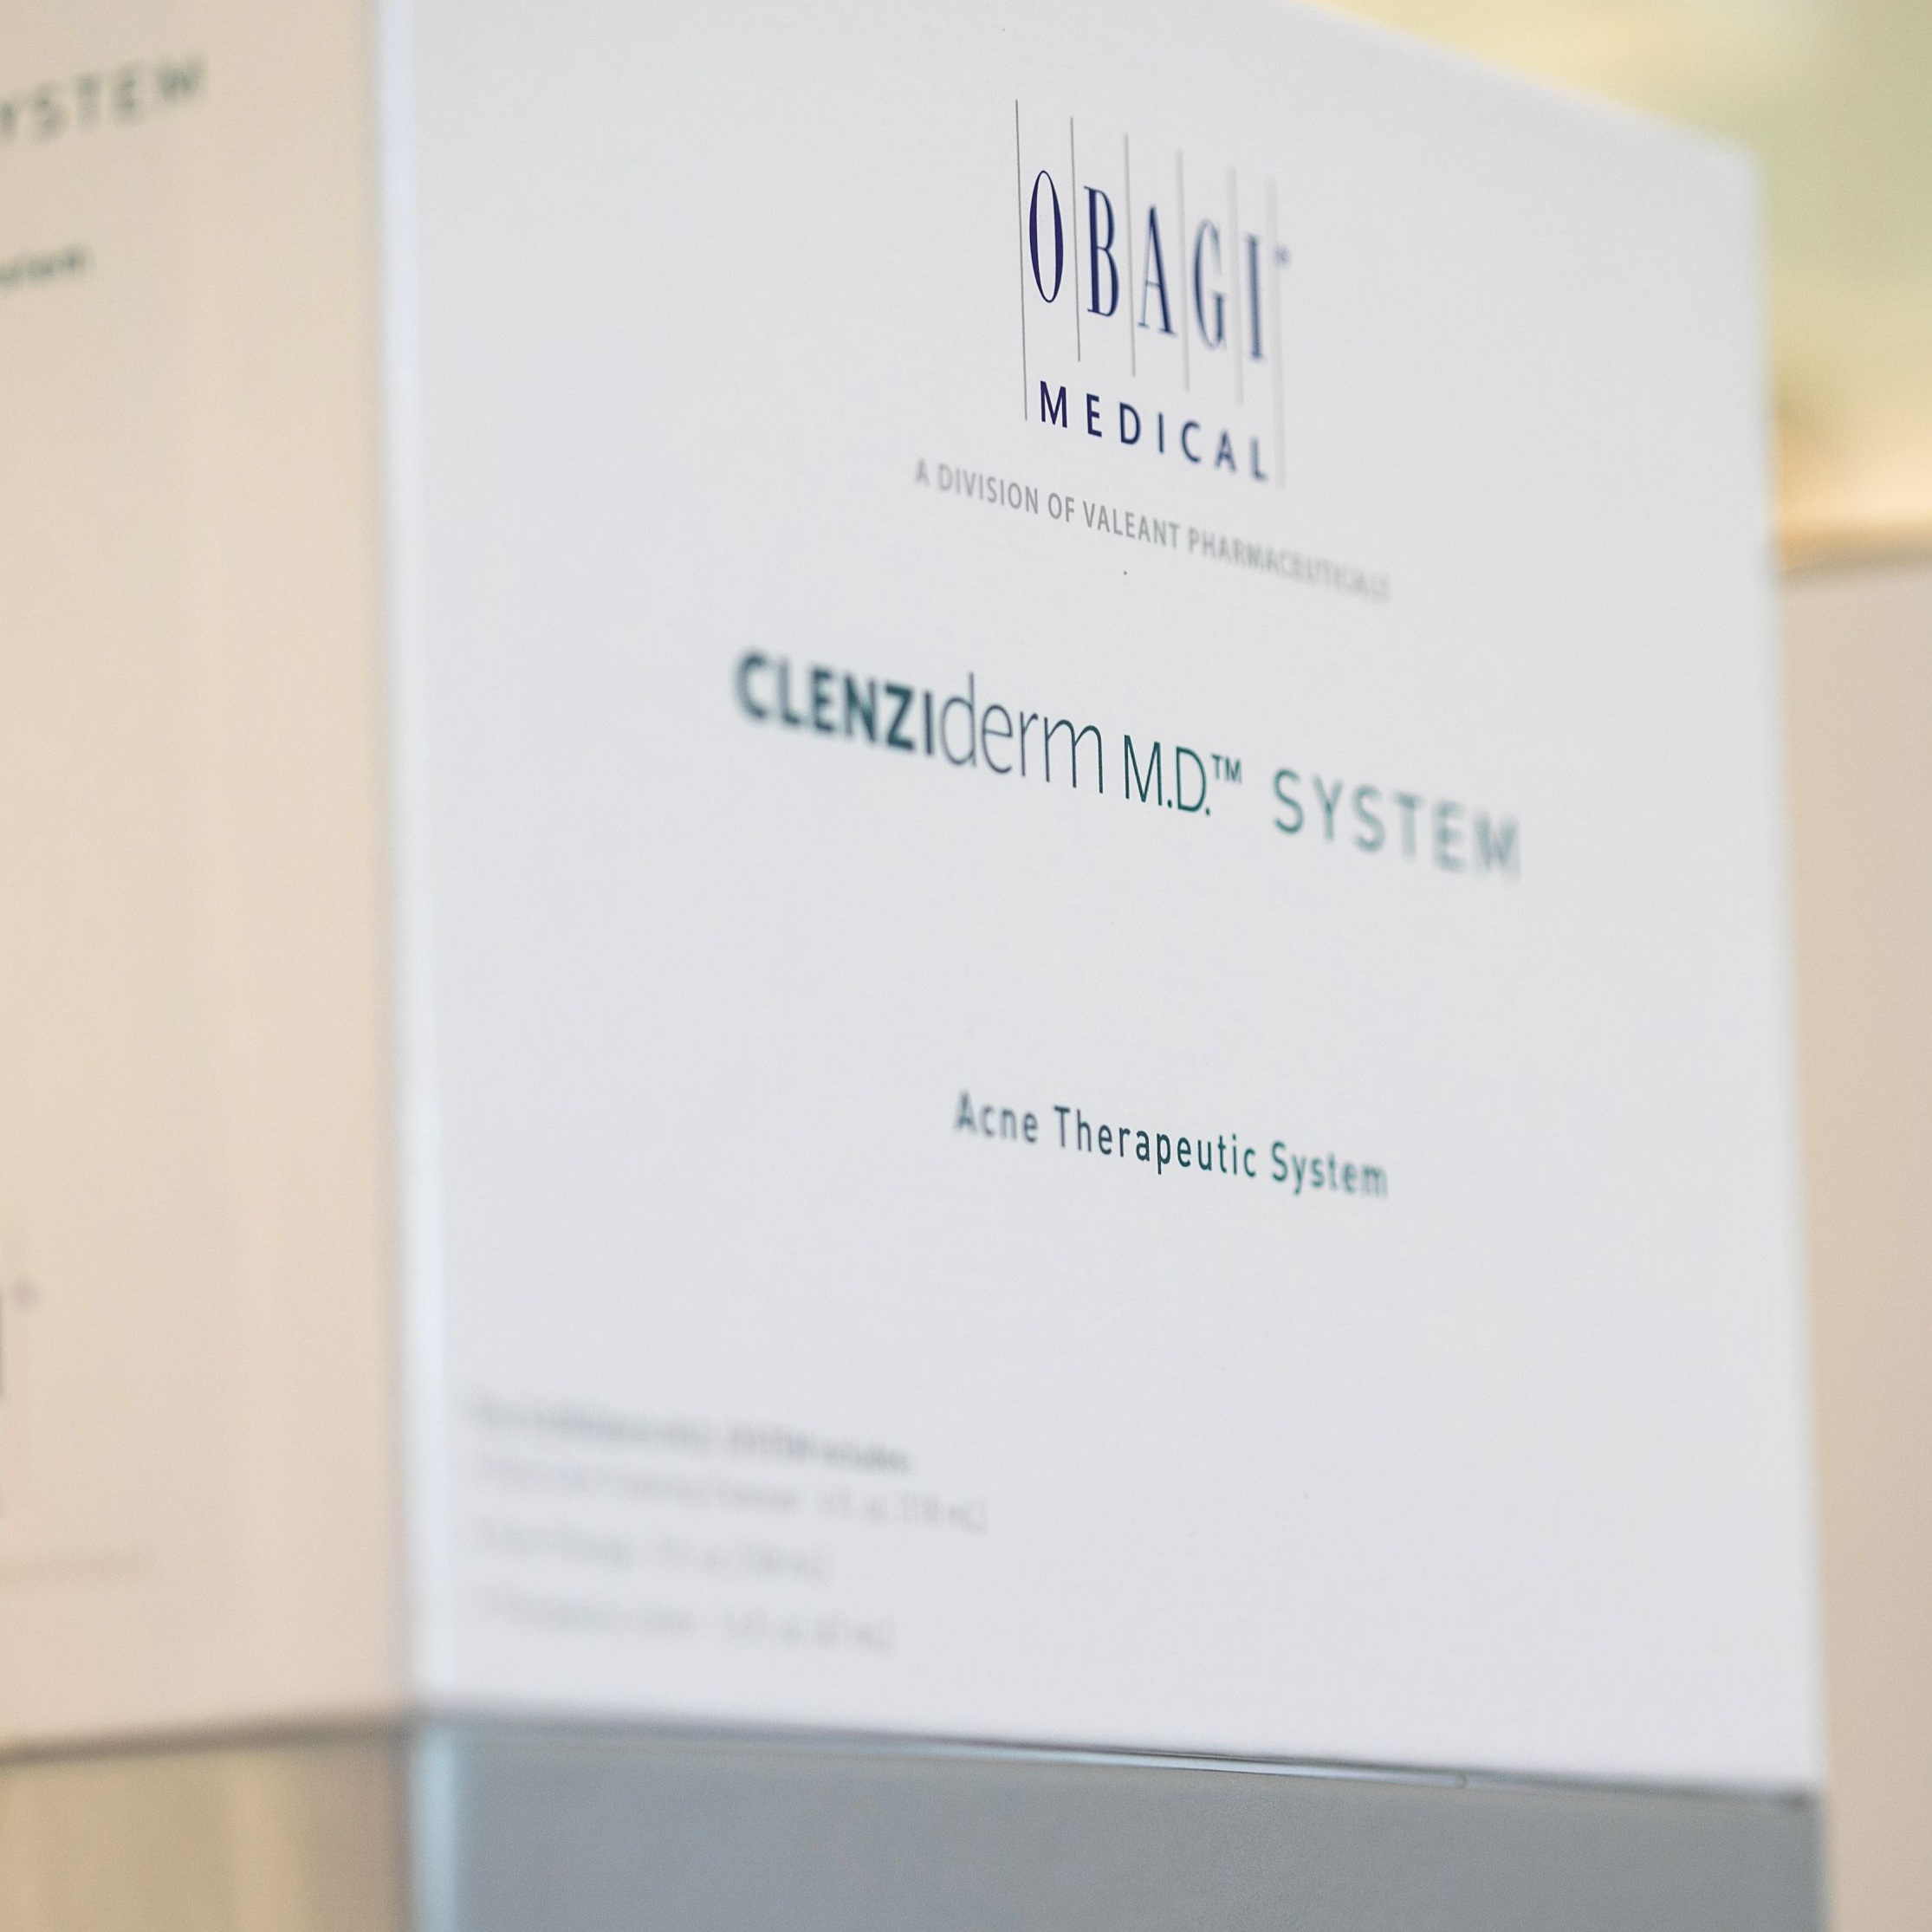 CHEMICAL PEELS - OBAGI™ - A medium-depth facial peel that works to reveal younger, healthier-looking skin one layer at a time.